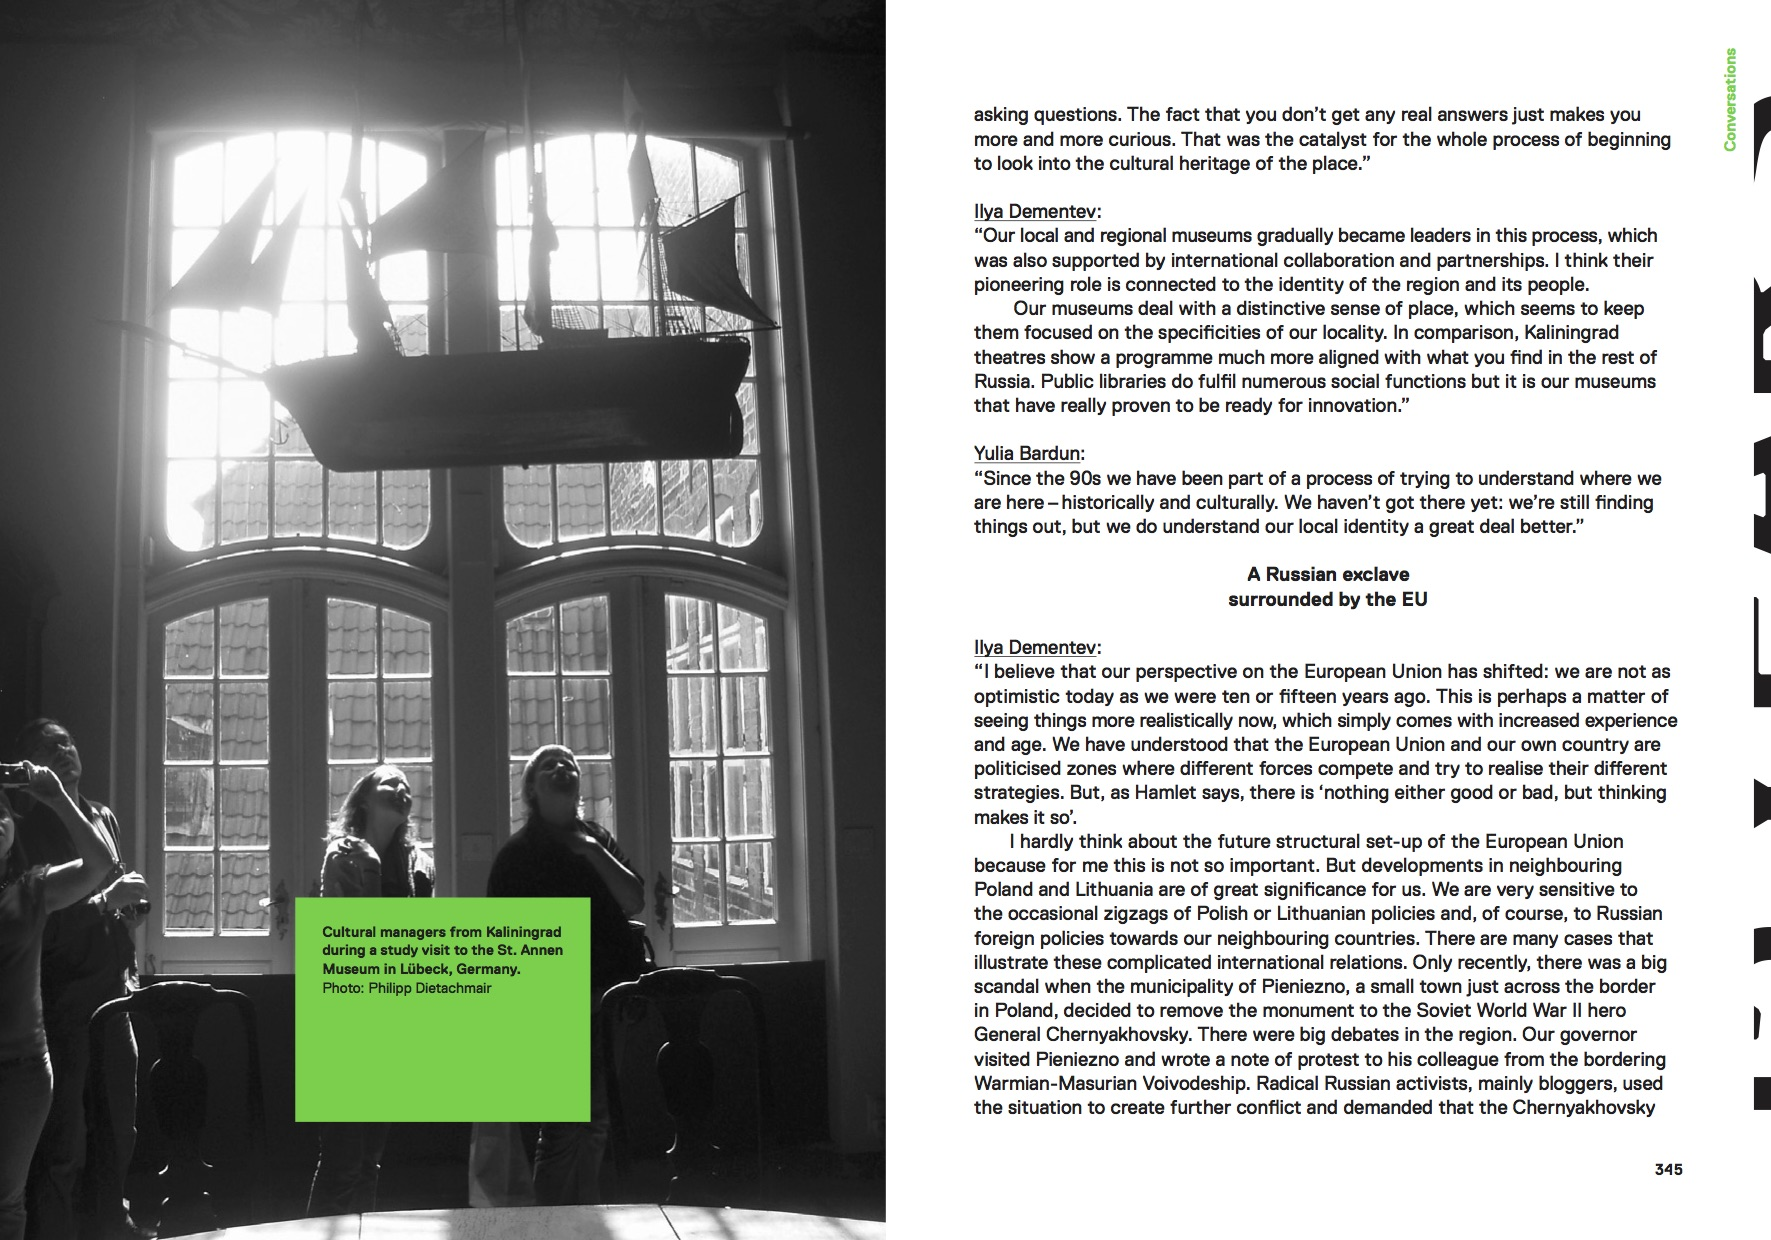 Pages from the Kaliningrad essay of the Another Europe book.Design and photo by Gerlinde Schuller (The World as Flatland)